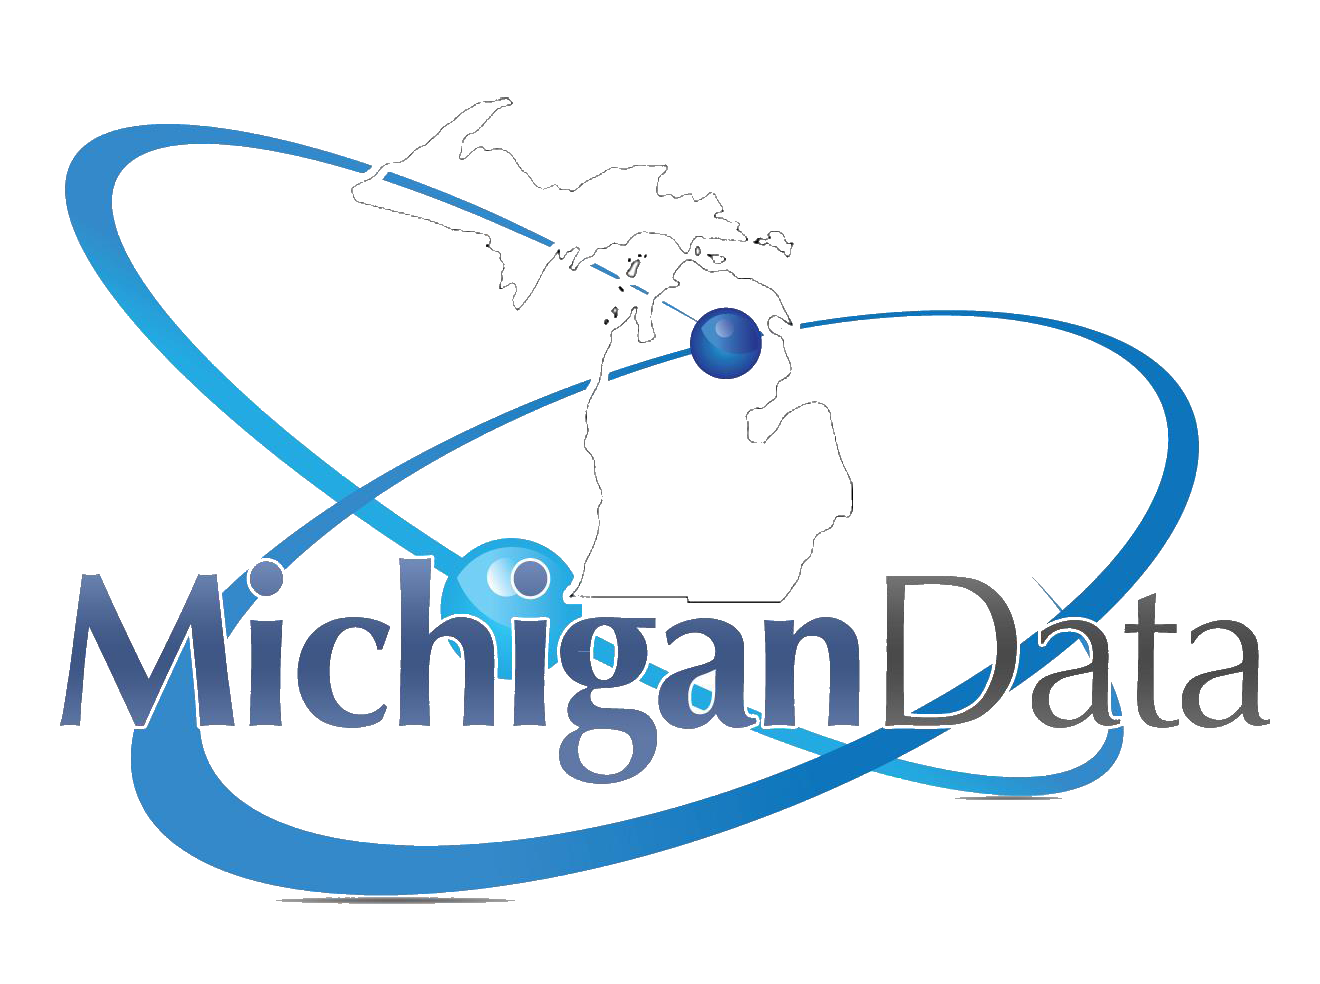 Michigan Data